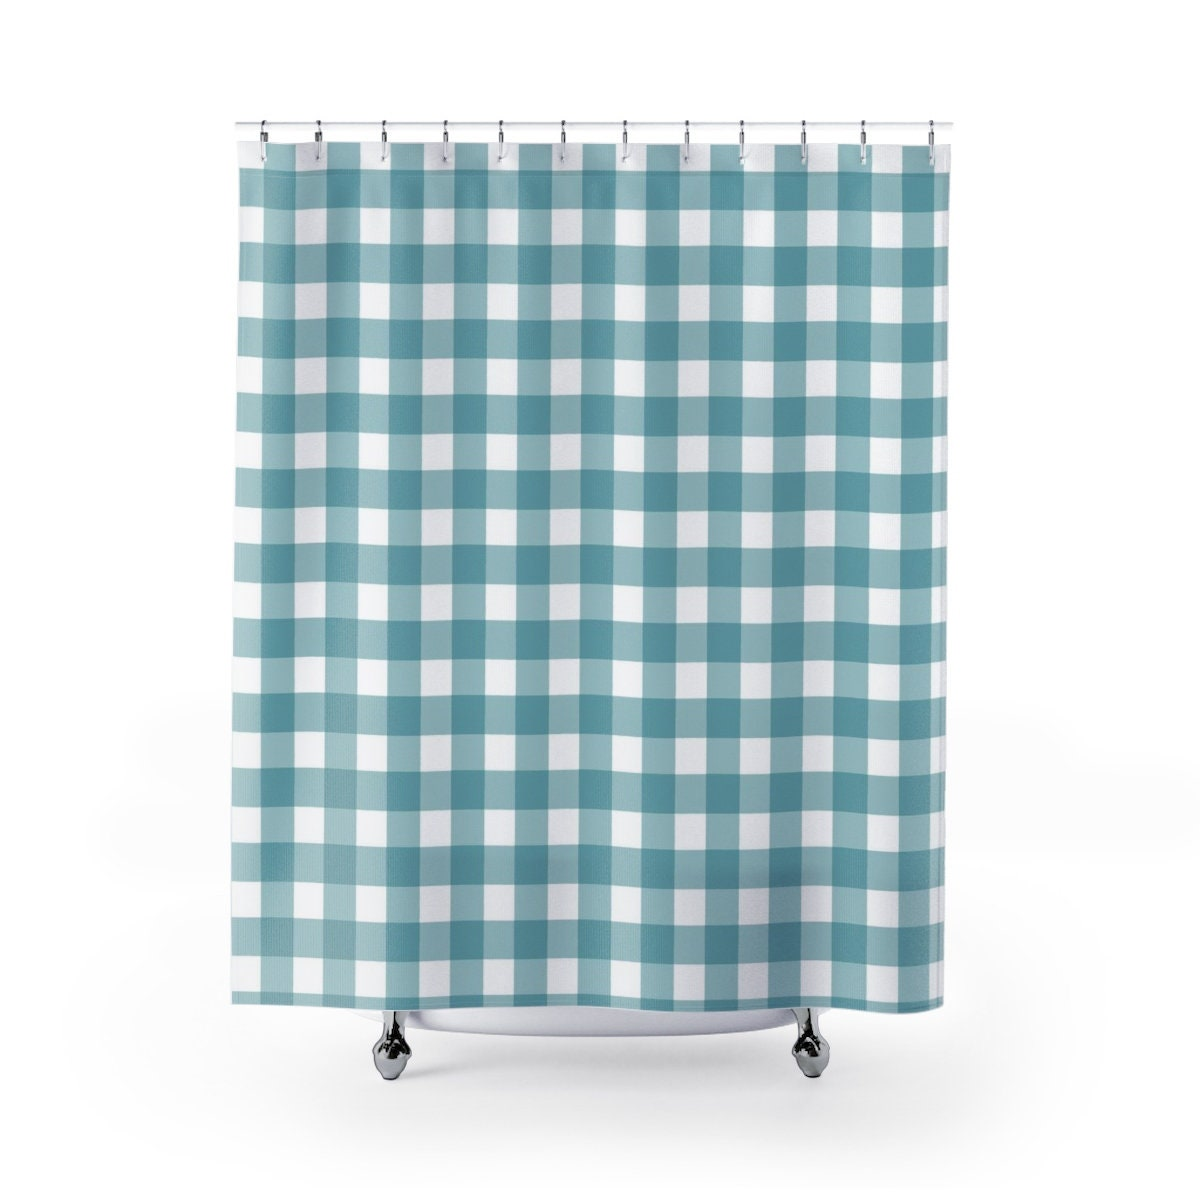 Aqua Blue Gingham Shower Curtain Farmhouse Bathroom Decor Bath Curtain Blue Kids Bathroom Ideas